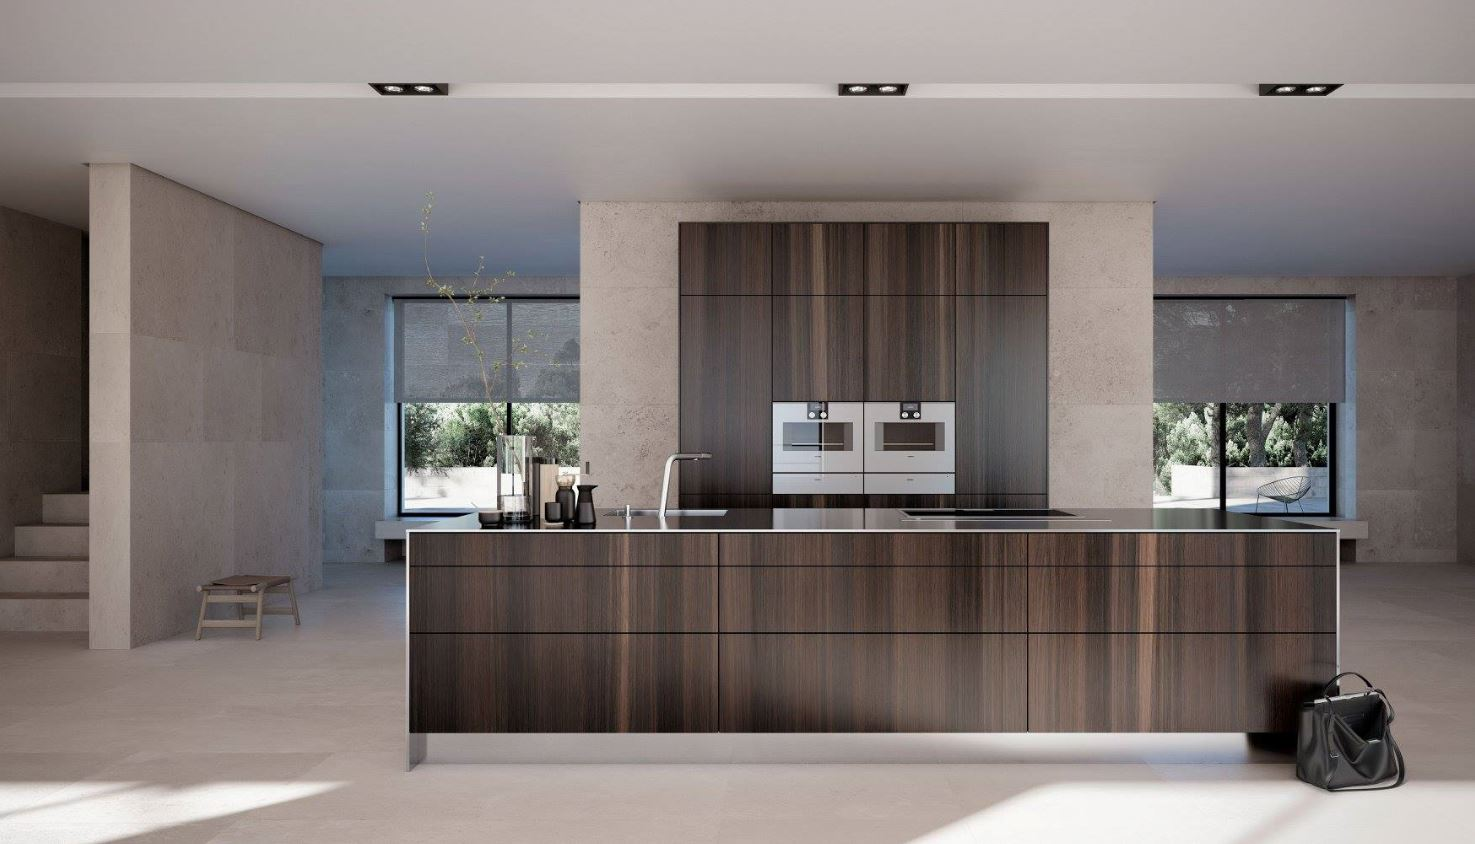 Designs kitchens by design for Kitchens by design